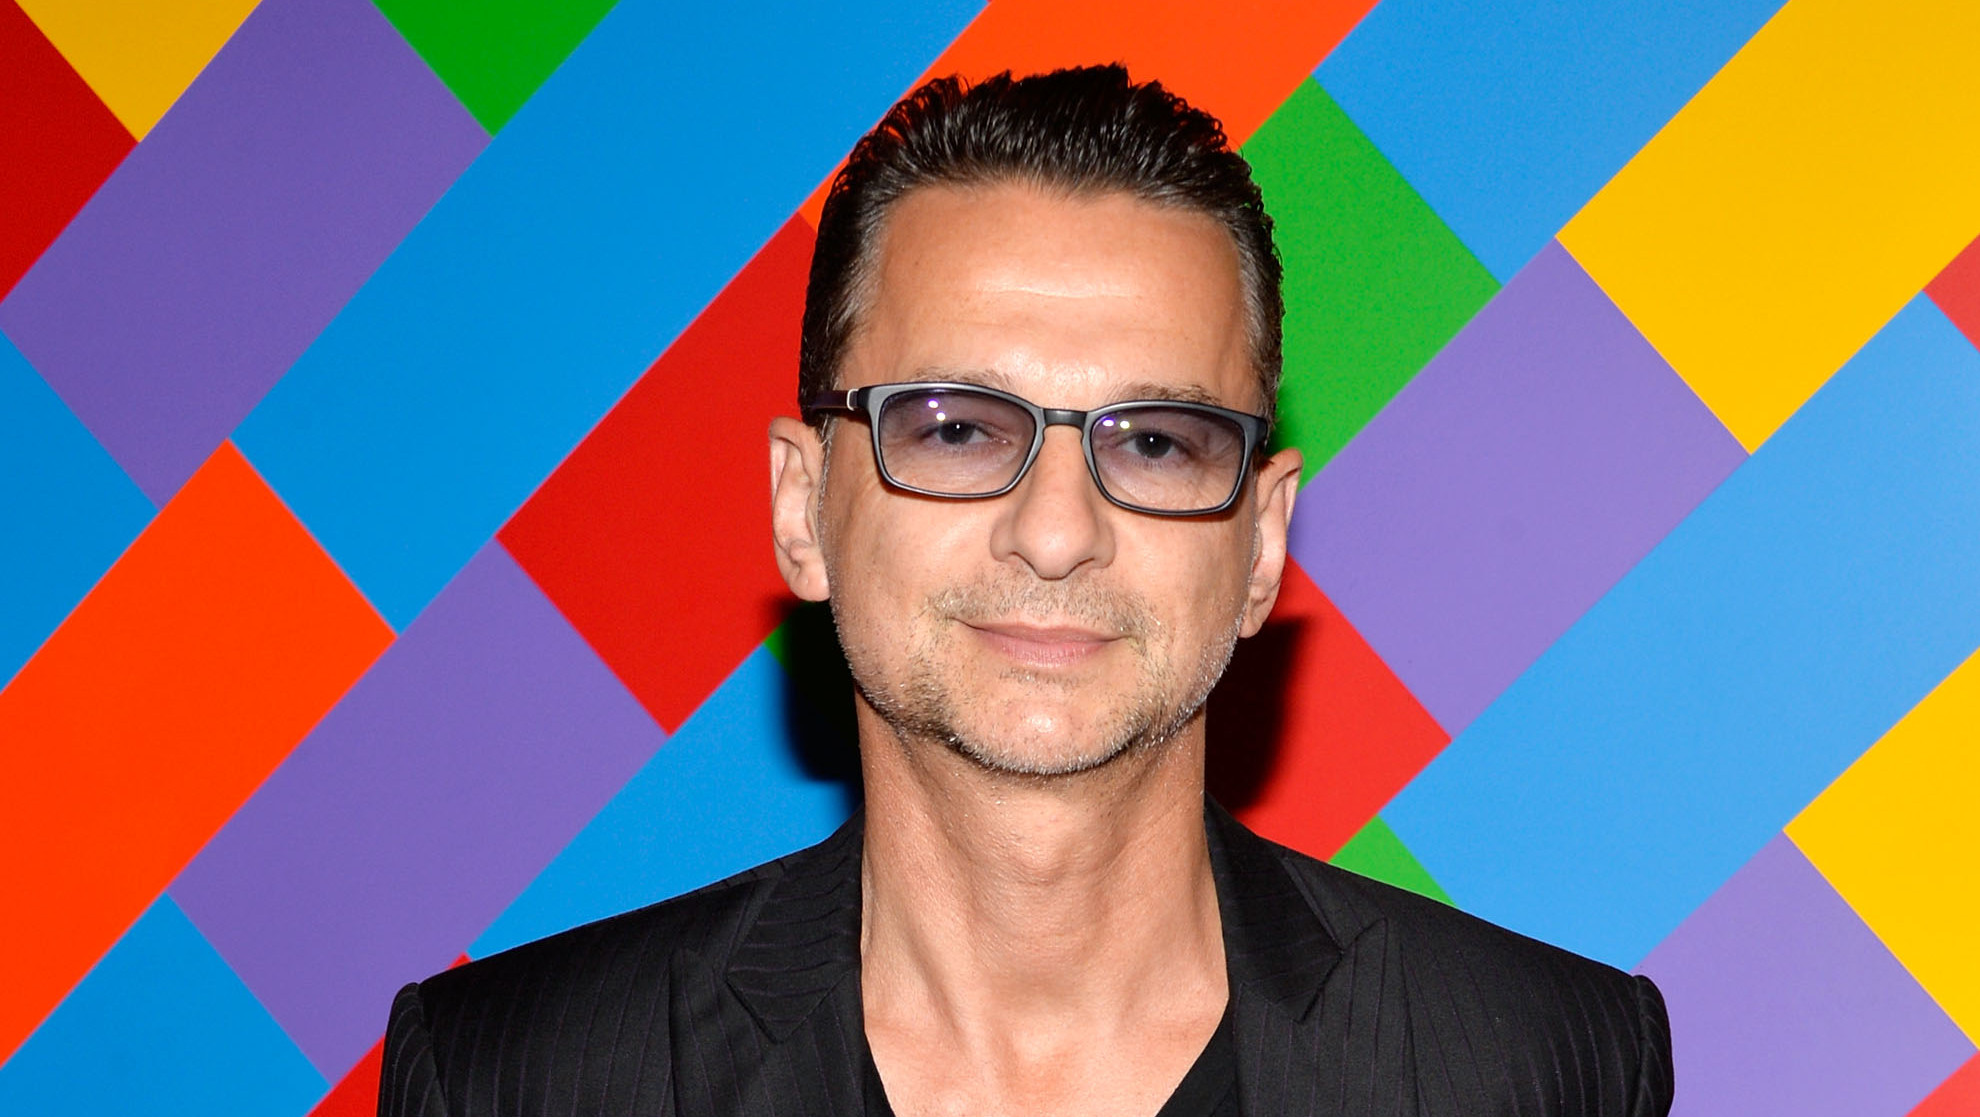 NEW YORK, NY - JULY 22:  Singer-songwriter Dave Gahan attends Lionsgate and Roadside Attraction's premiere of 'A Most Wanted